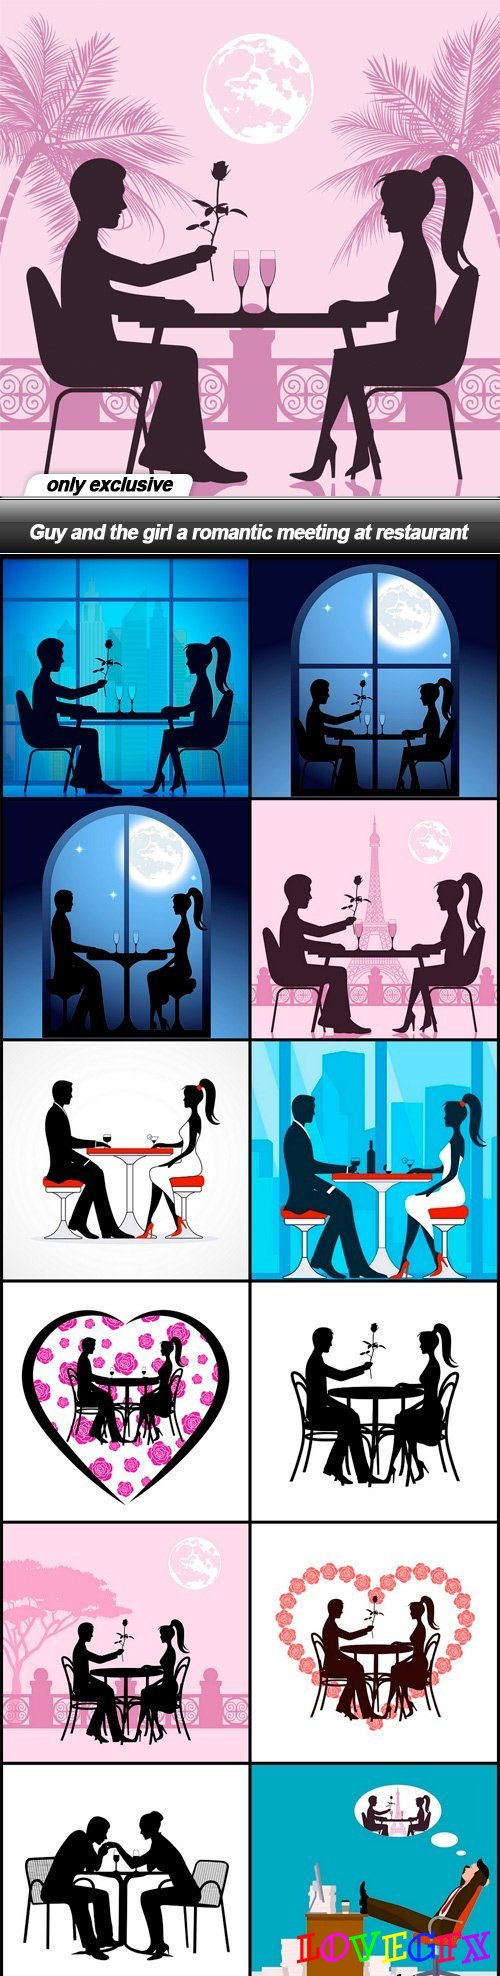 Guy and the girl a romantic meeting at restaurant - 13 EPS